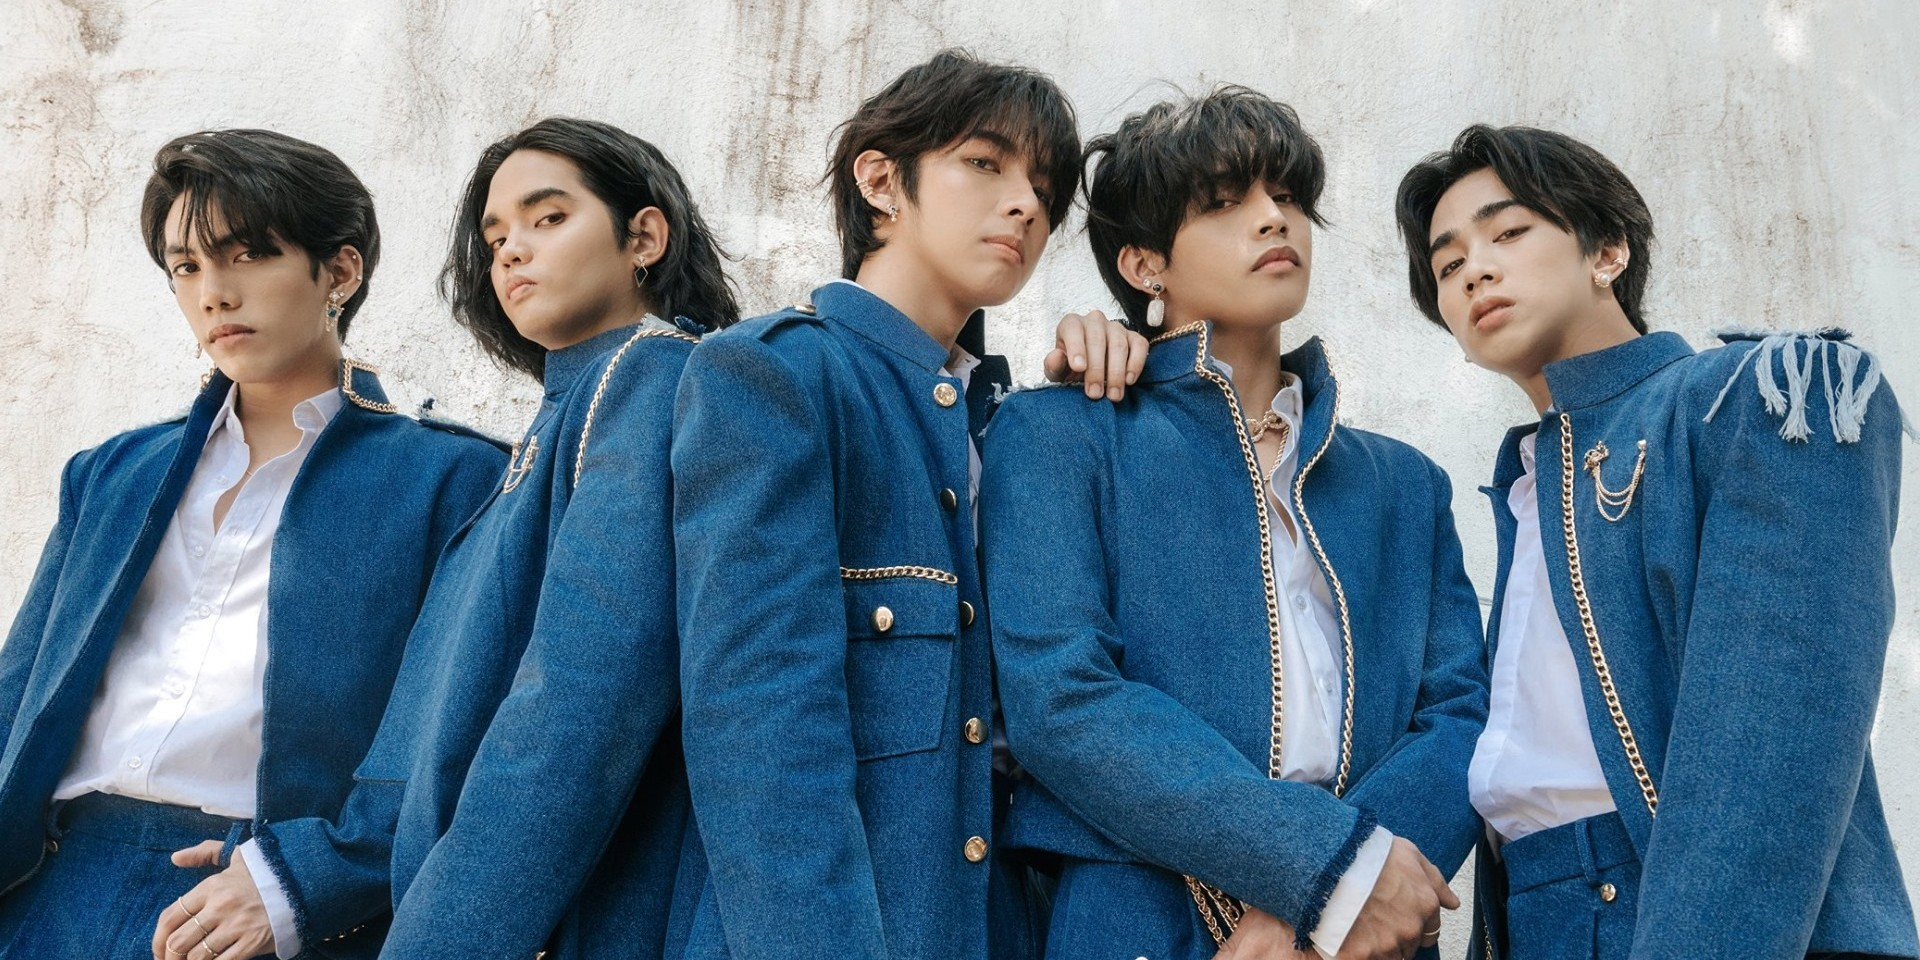 SB19 reveal official 'Pagsibol' EP tracklist and songwriting credits